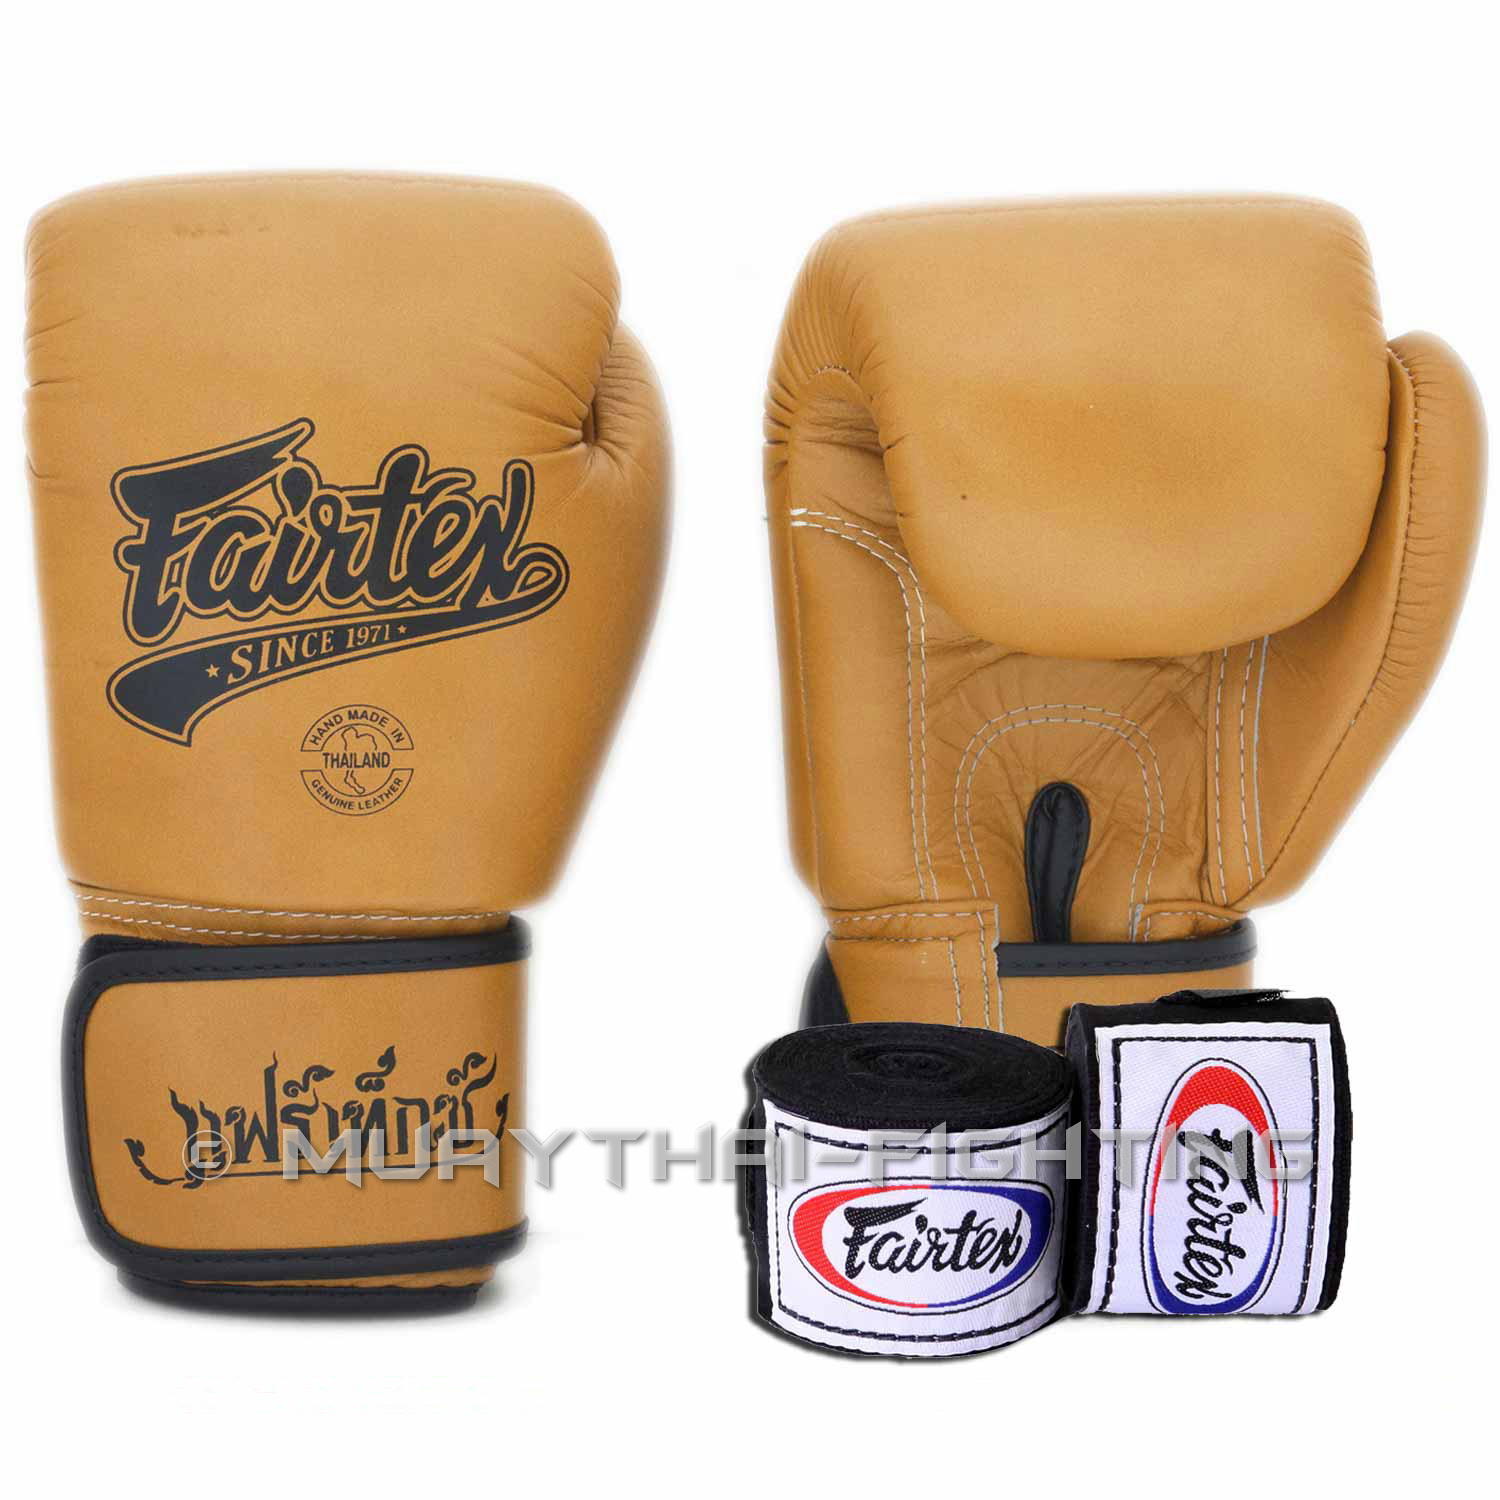 Boking Gloves: Fairtex Muay Thai Kick Boxing Glove Fairtex Classic Gloves